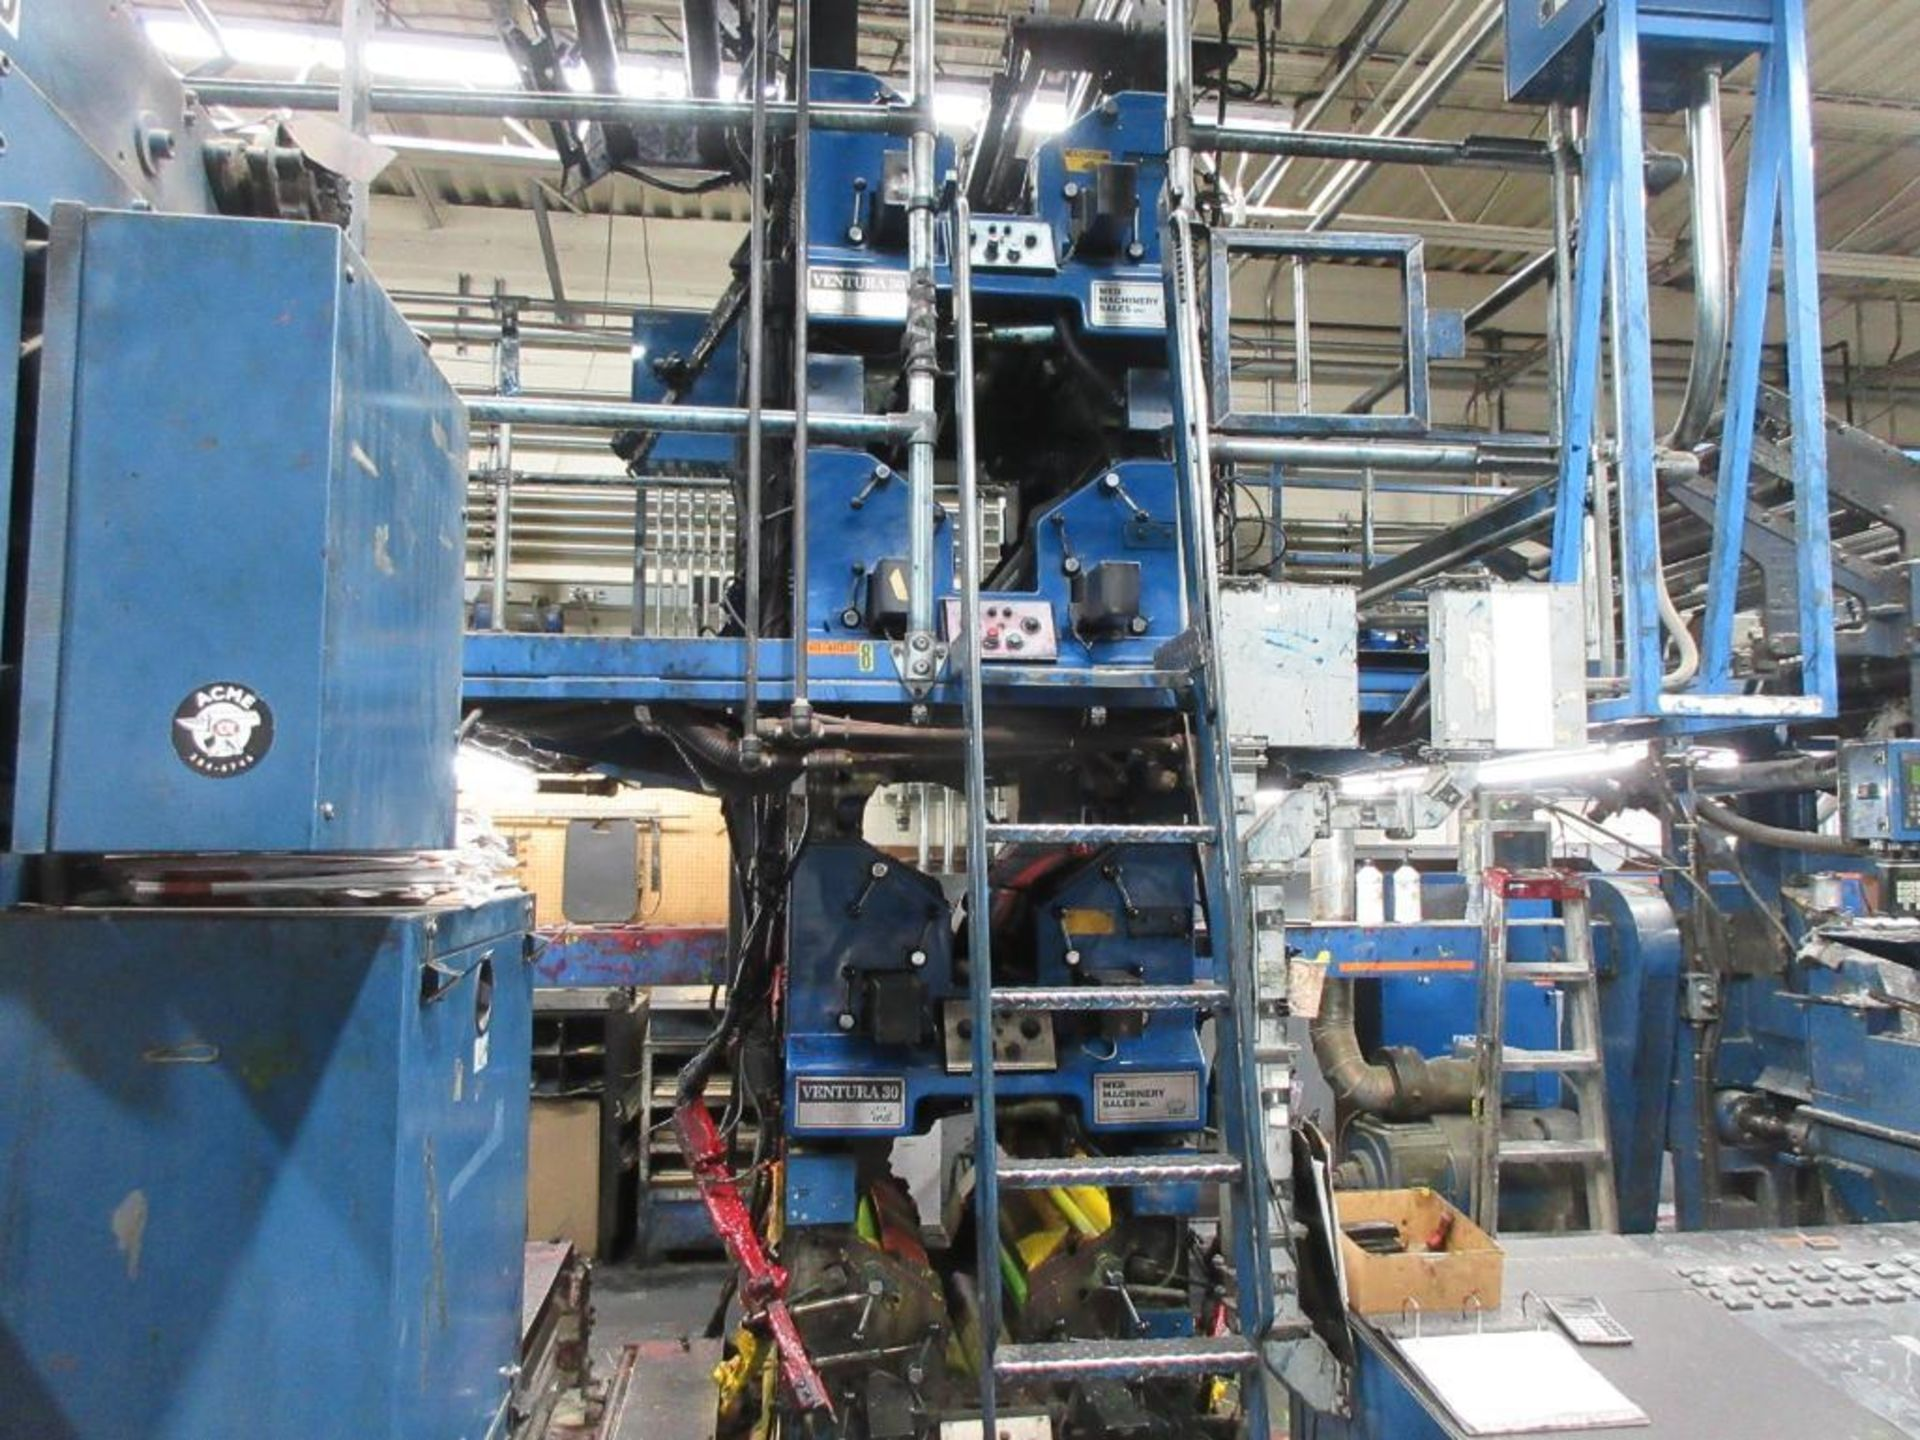 "Complete Goss/Ventura 22.75"" cut off 50 unit web offset press featuring: Ventura 30 4 high (0), Vent - Image 17 of 58"